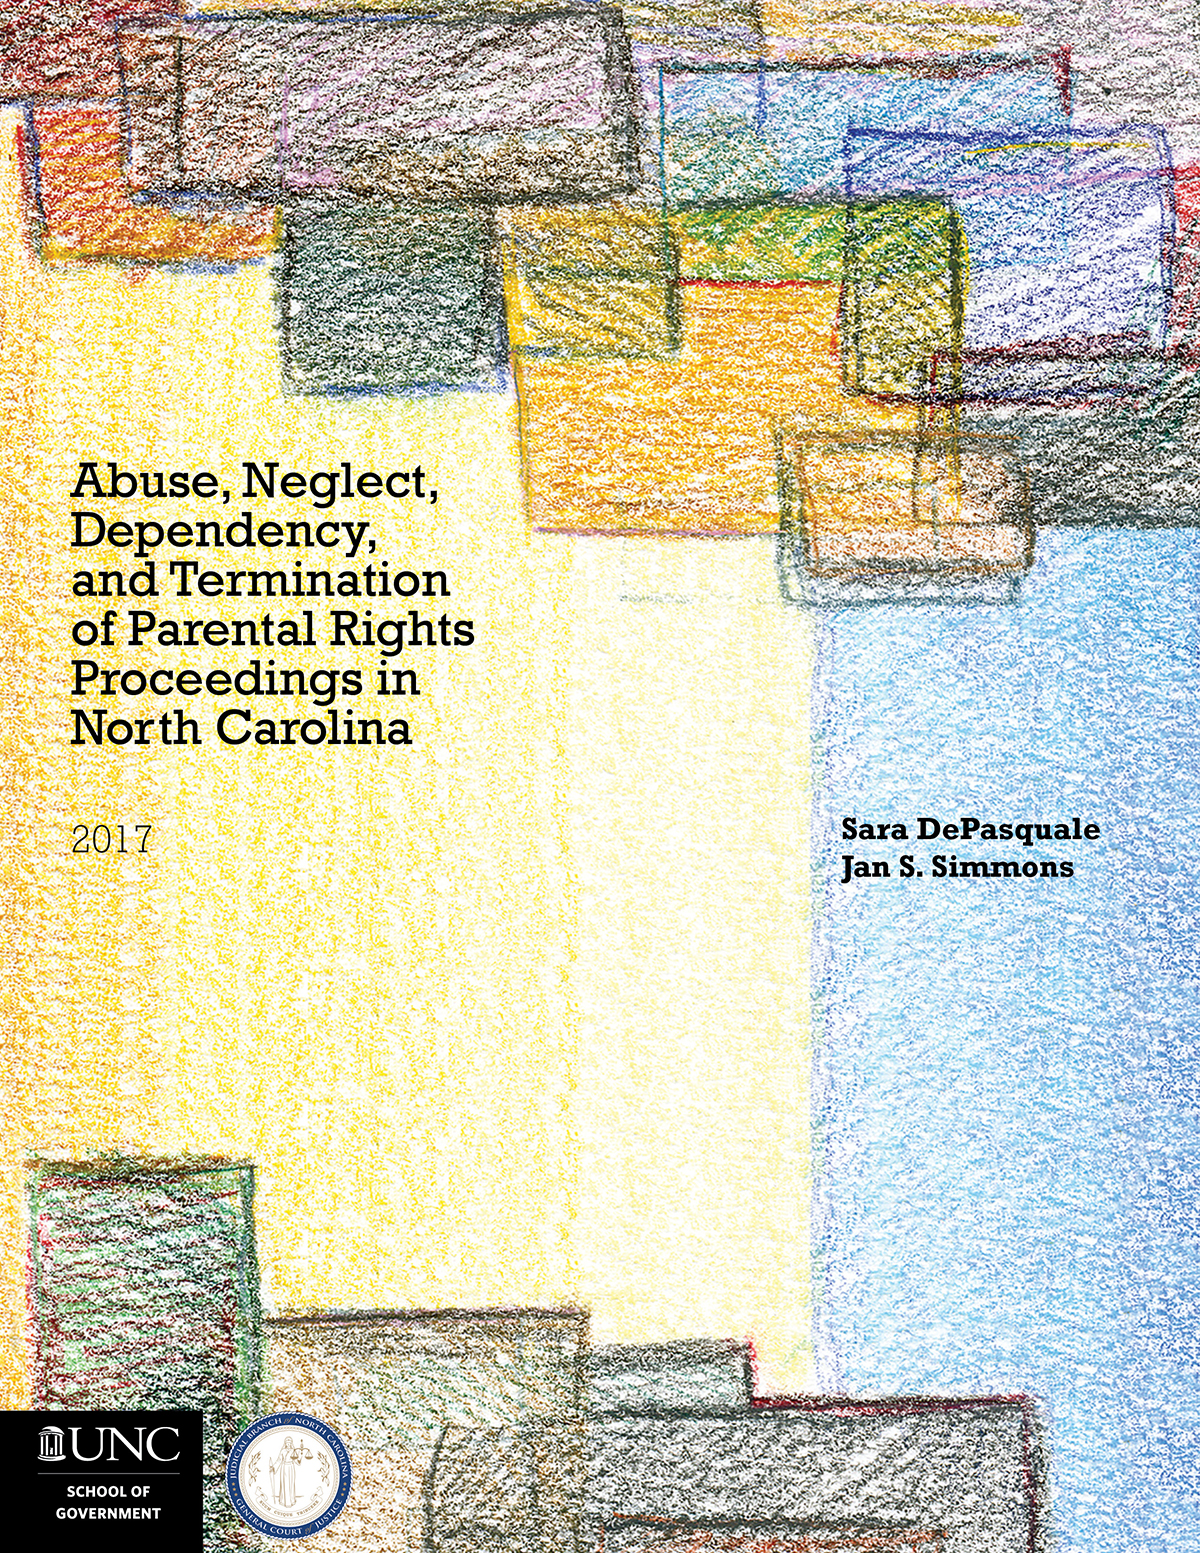 Abuse Neglect Dependency and Termination of Parental Rights in North Carolina by Sara DePasquale UNC School of Government